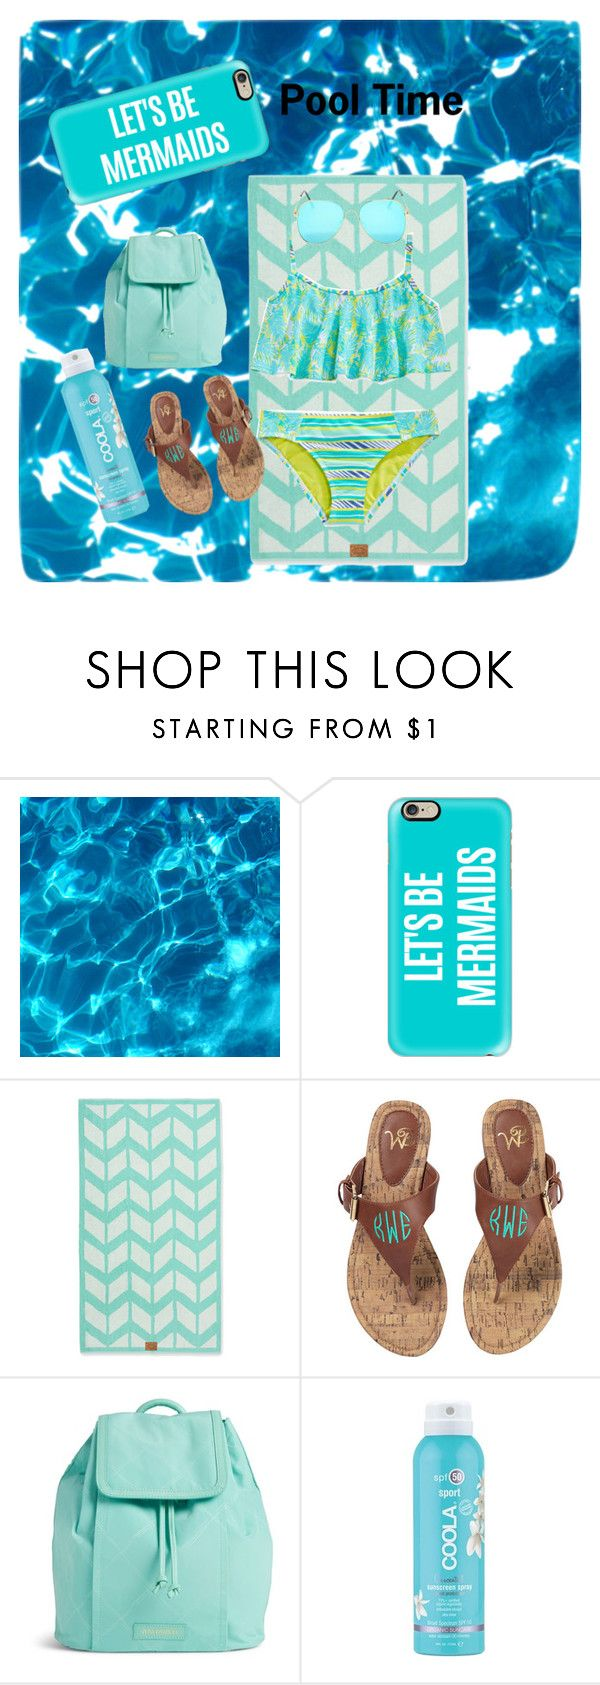 Pool Time by kwiggins2021 on Polyvore featuring Vera Bradley, Casetify, COOLA Suncare, women's clothing, women's fashion, women, female, woman, misses and juniors